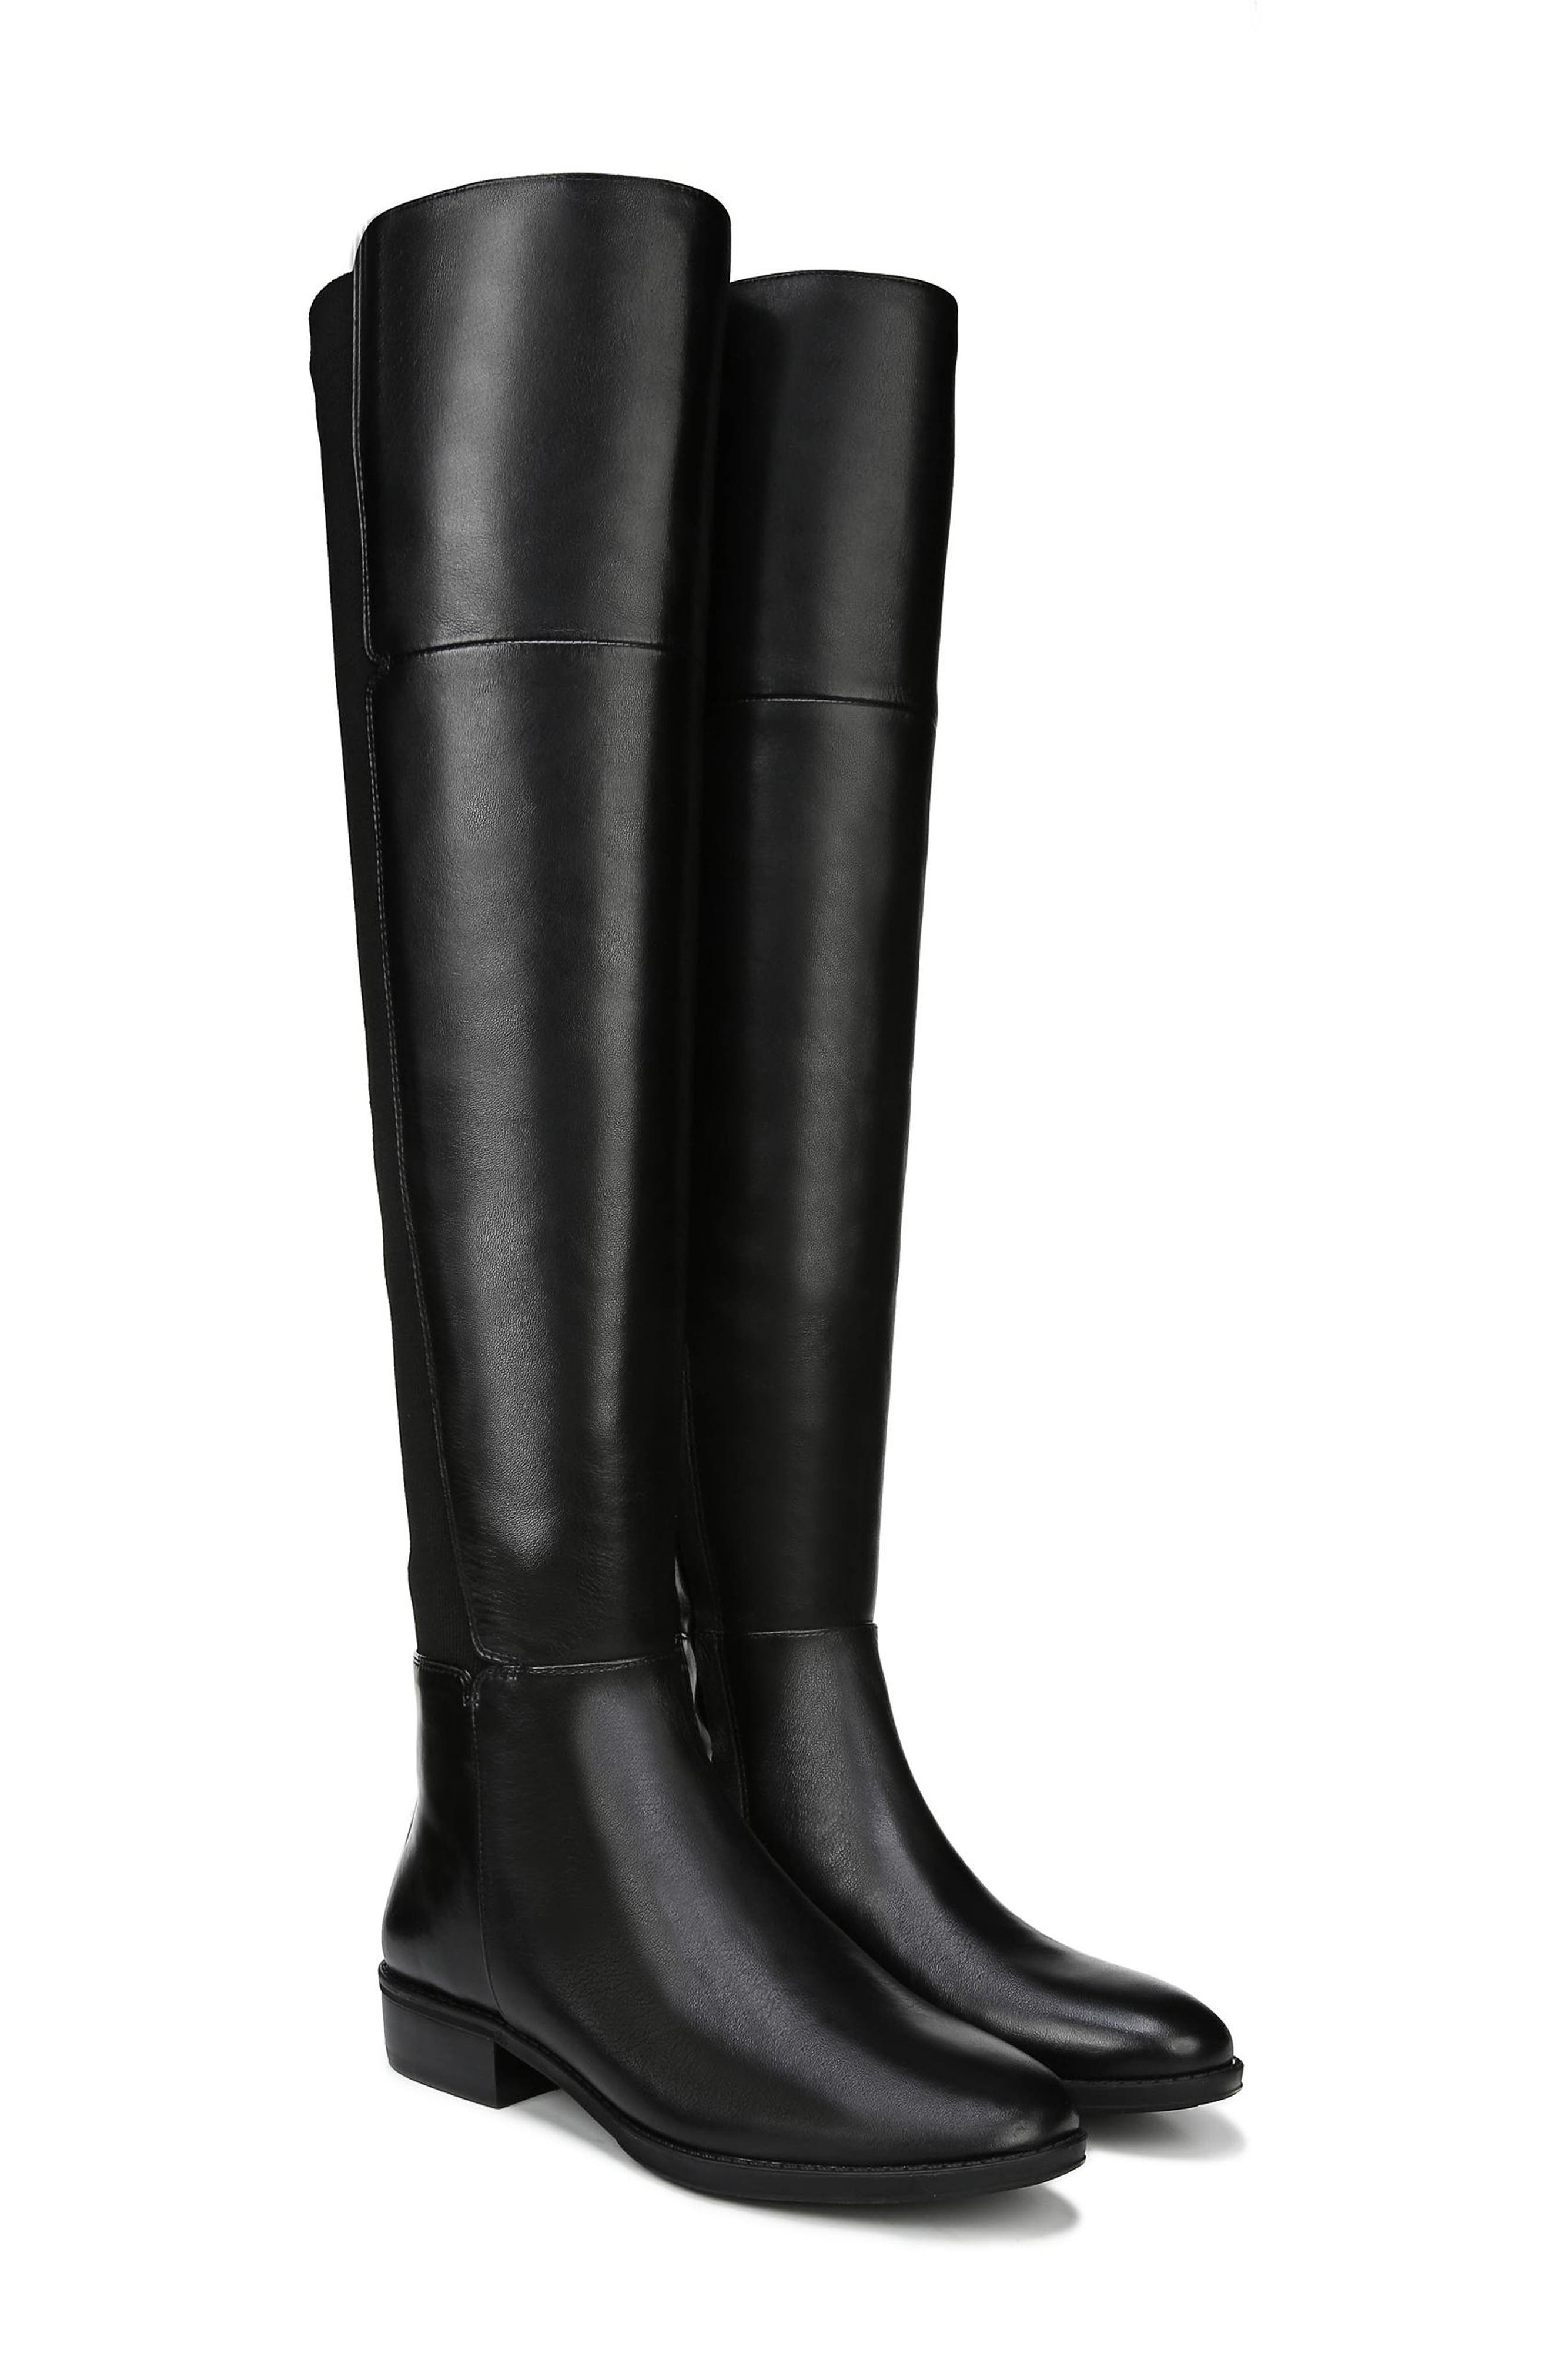 Pam Over the Knee Boot,                             Alternate thumbnail 9, color,                             BLACK LEATHER